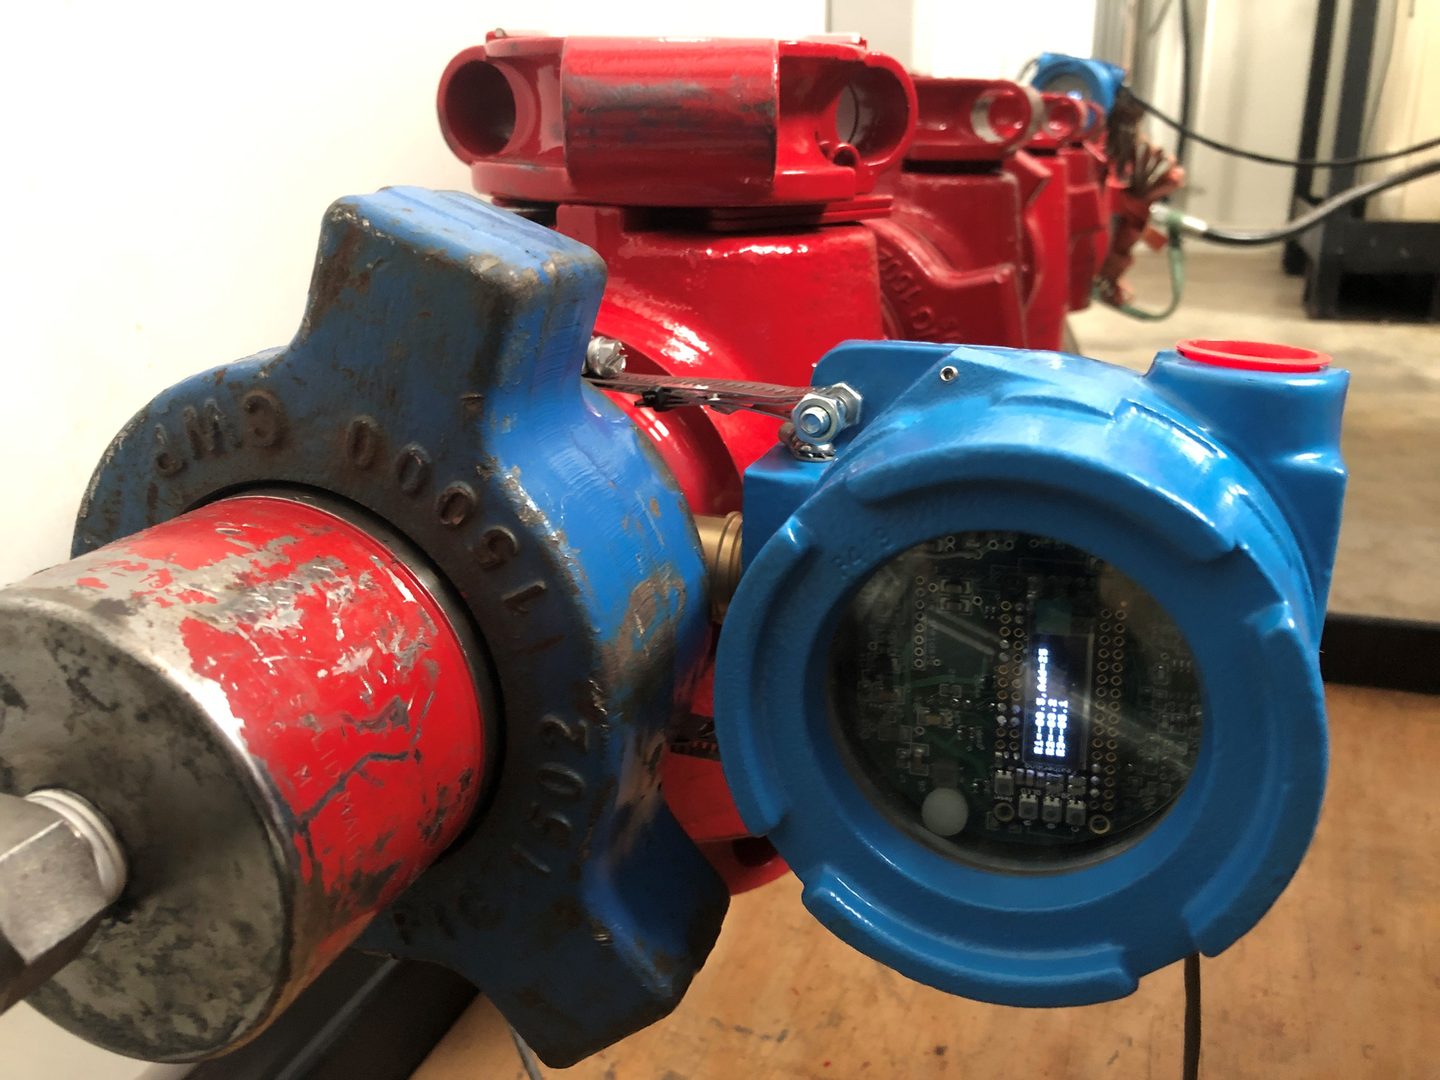 EZ Vision sensors use acoustic data to highlight potential sources of leakage in the system.